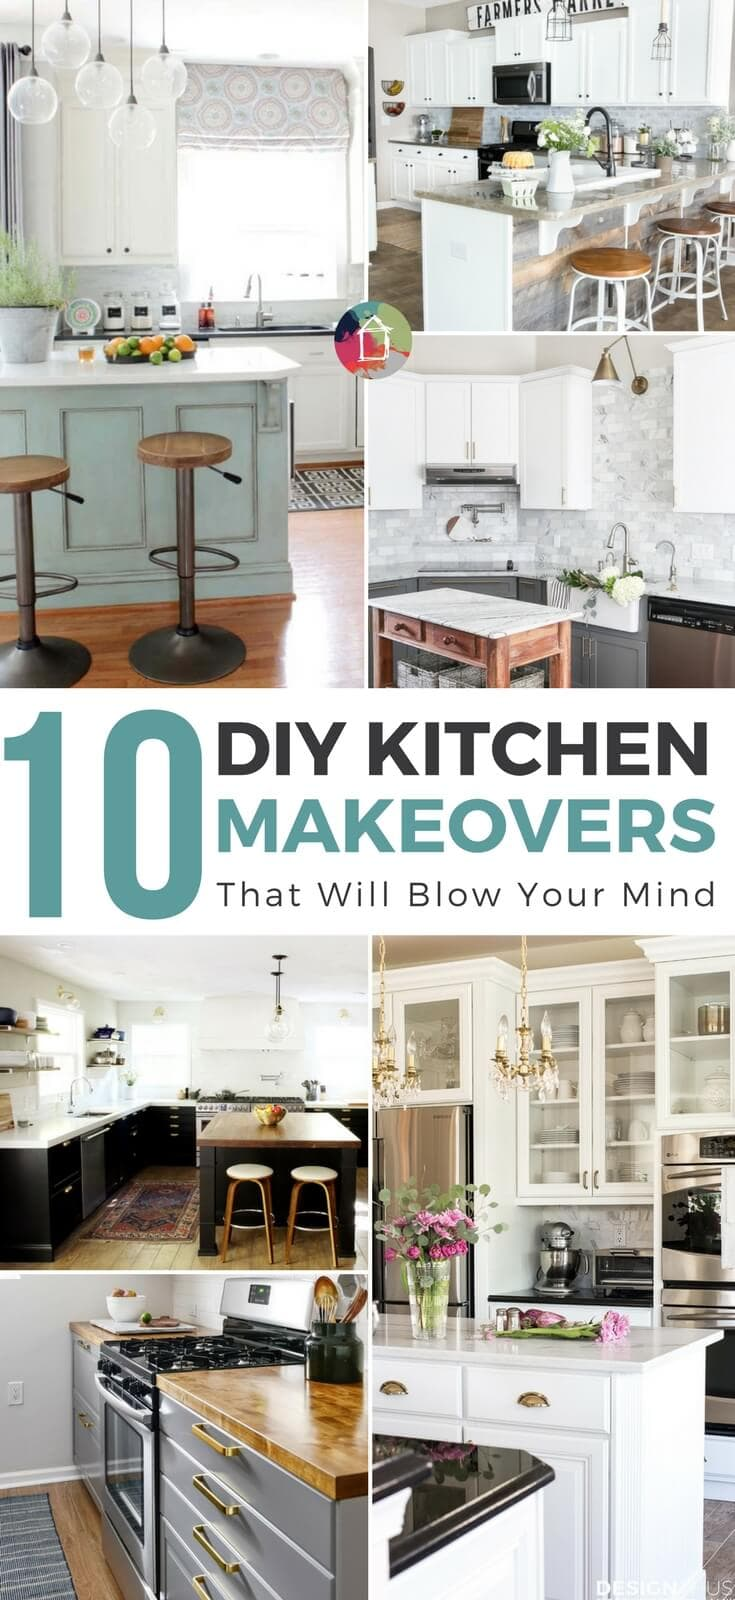 Looking for DIY kitchen makeover ideas? These 10 amazing DIY kitchen renovations will blow your mind and have you planning your new kitchen!